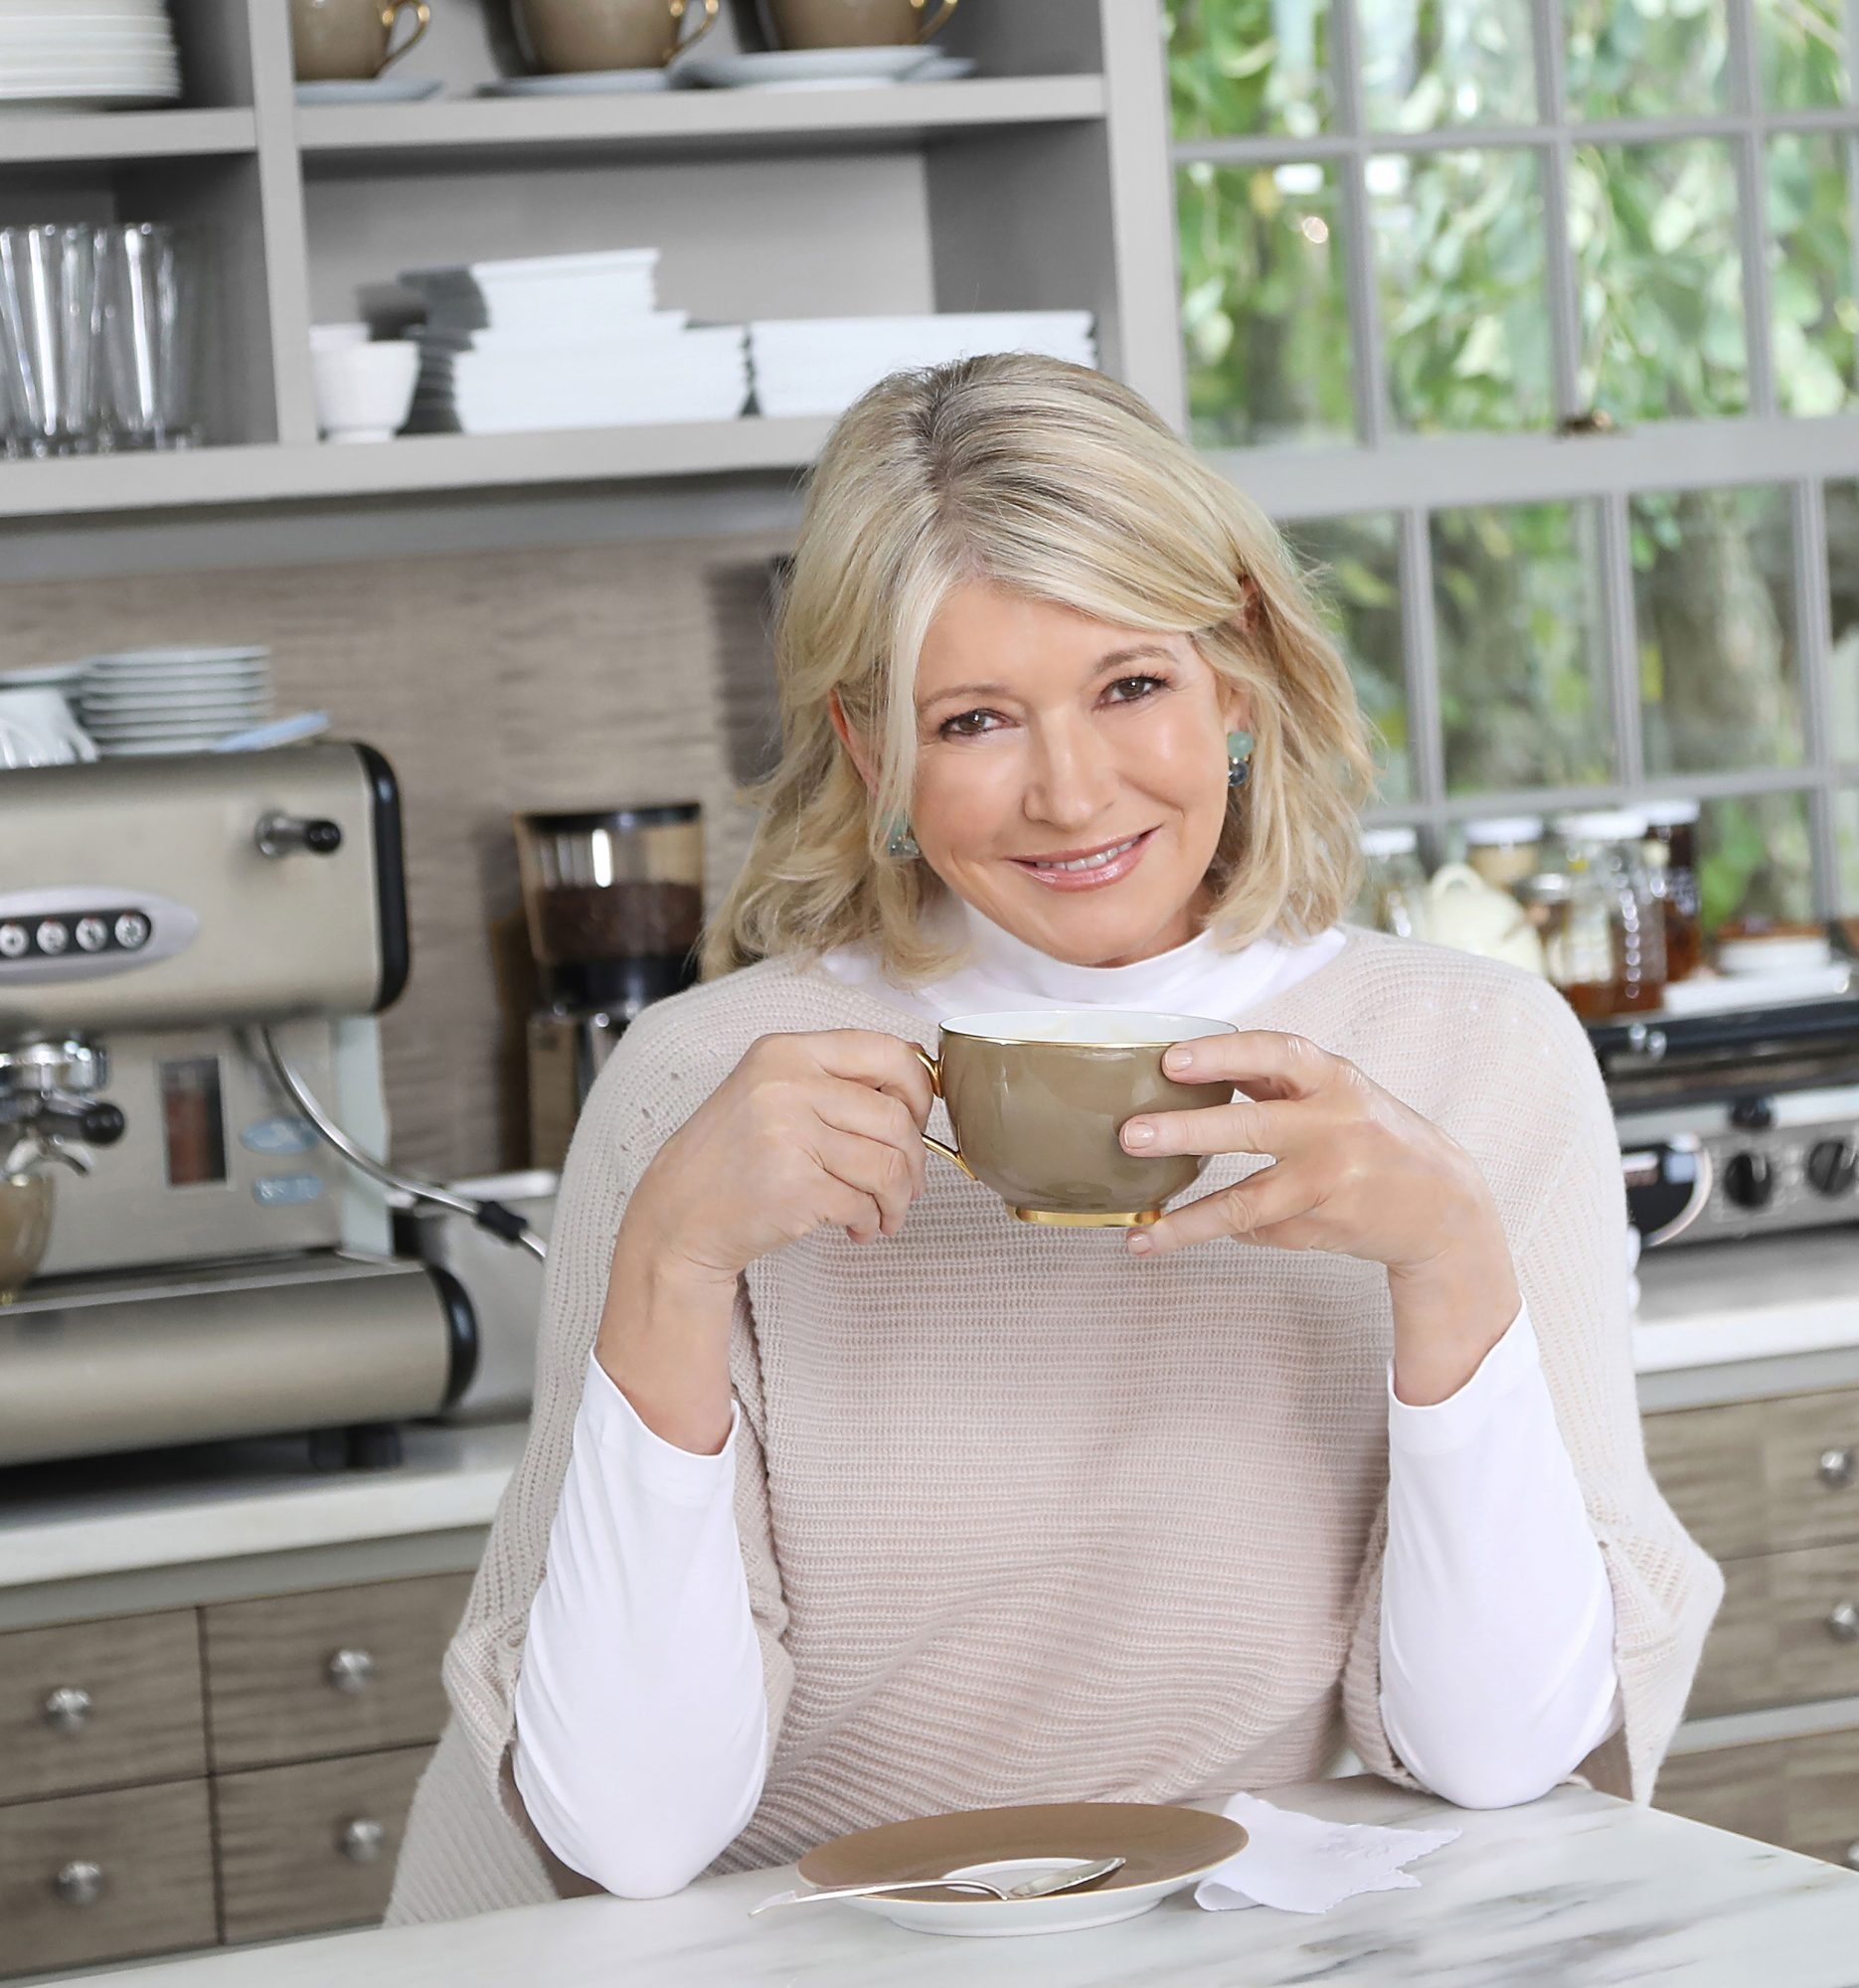 Martha Stewart Headshot, Drinking Coffee